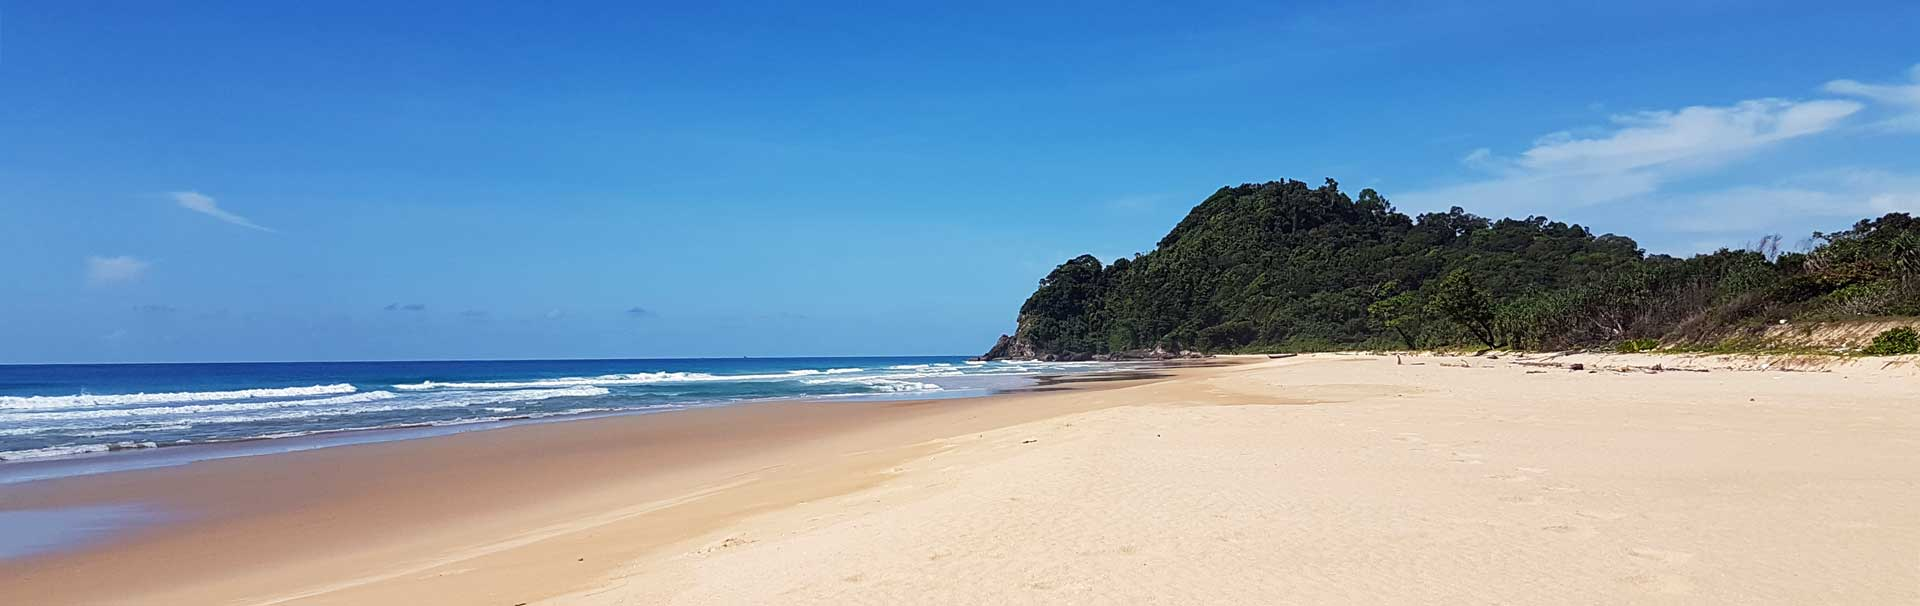 Singing Beach near Khao Lak